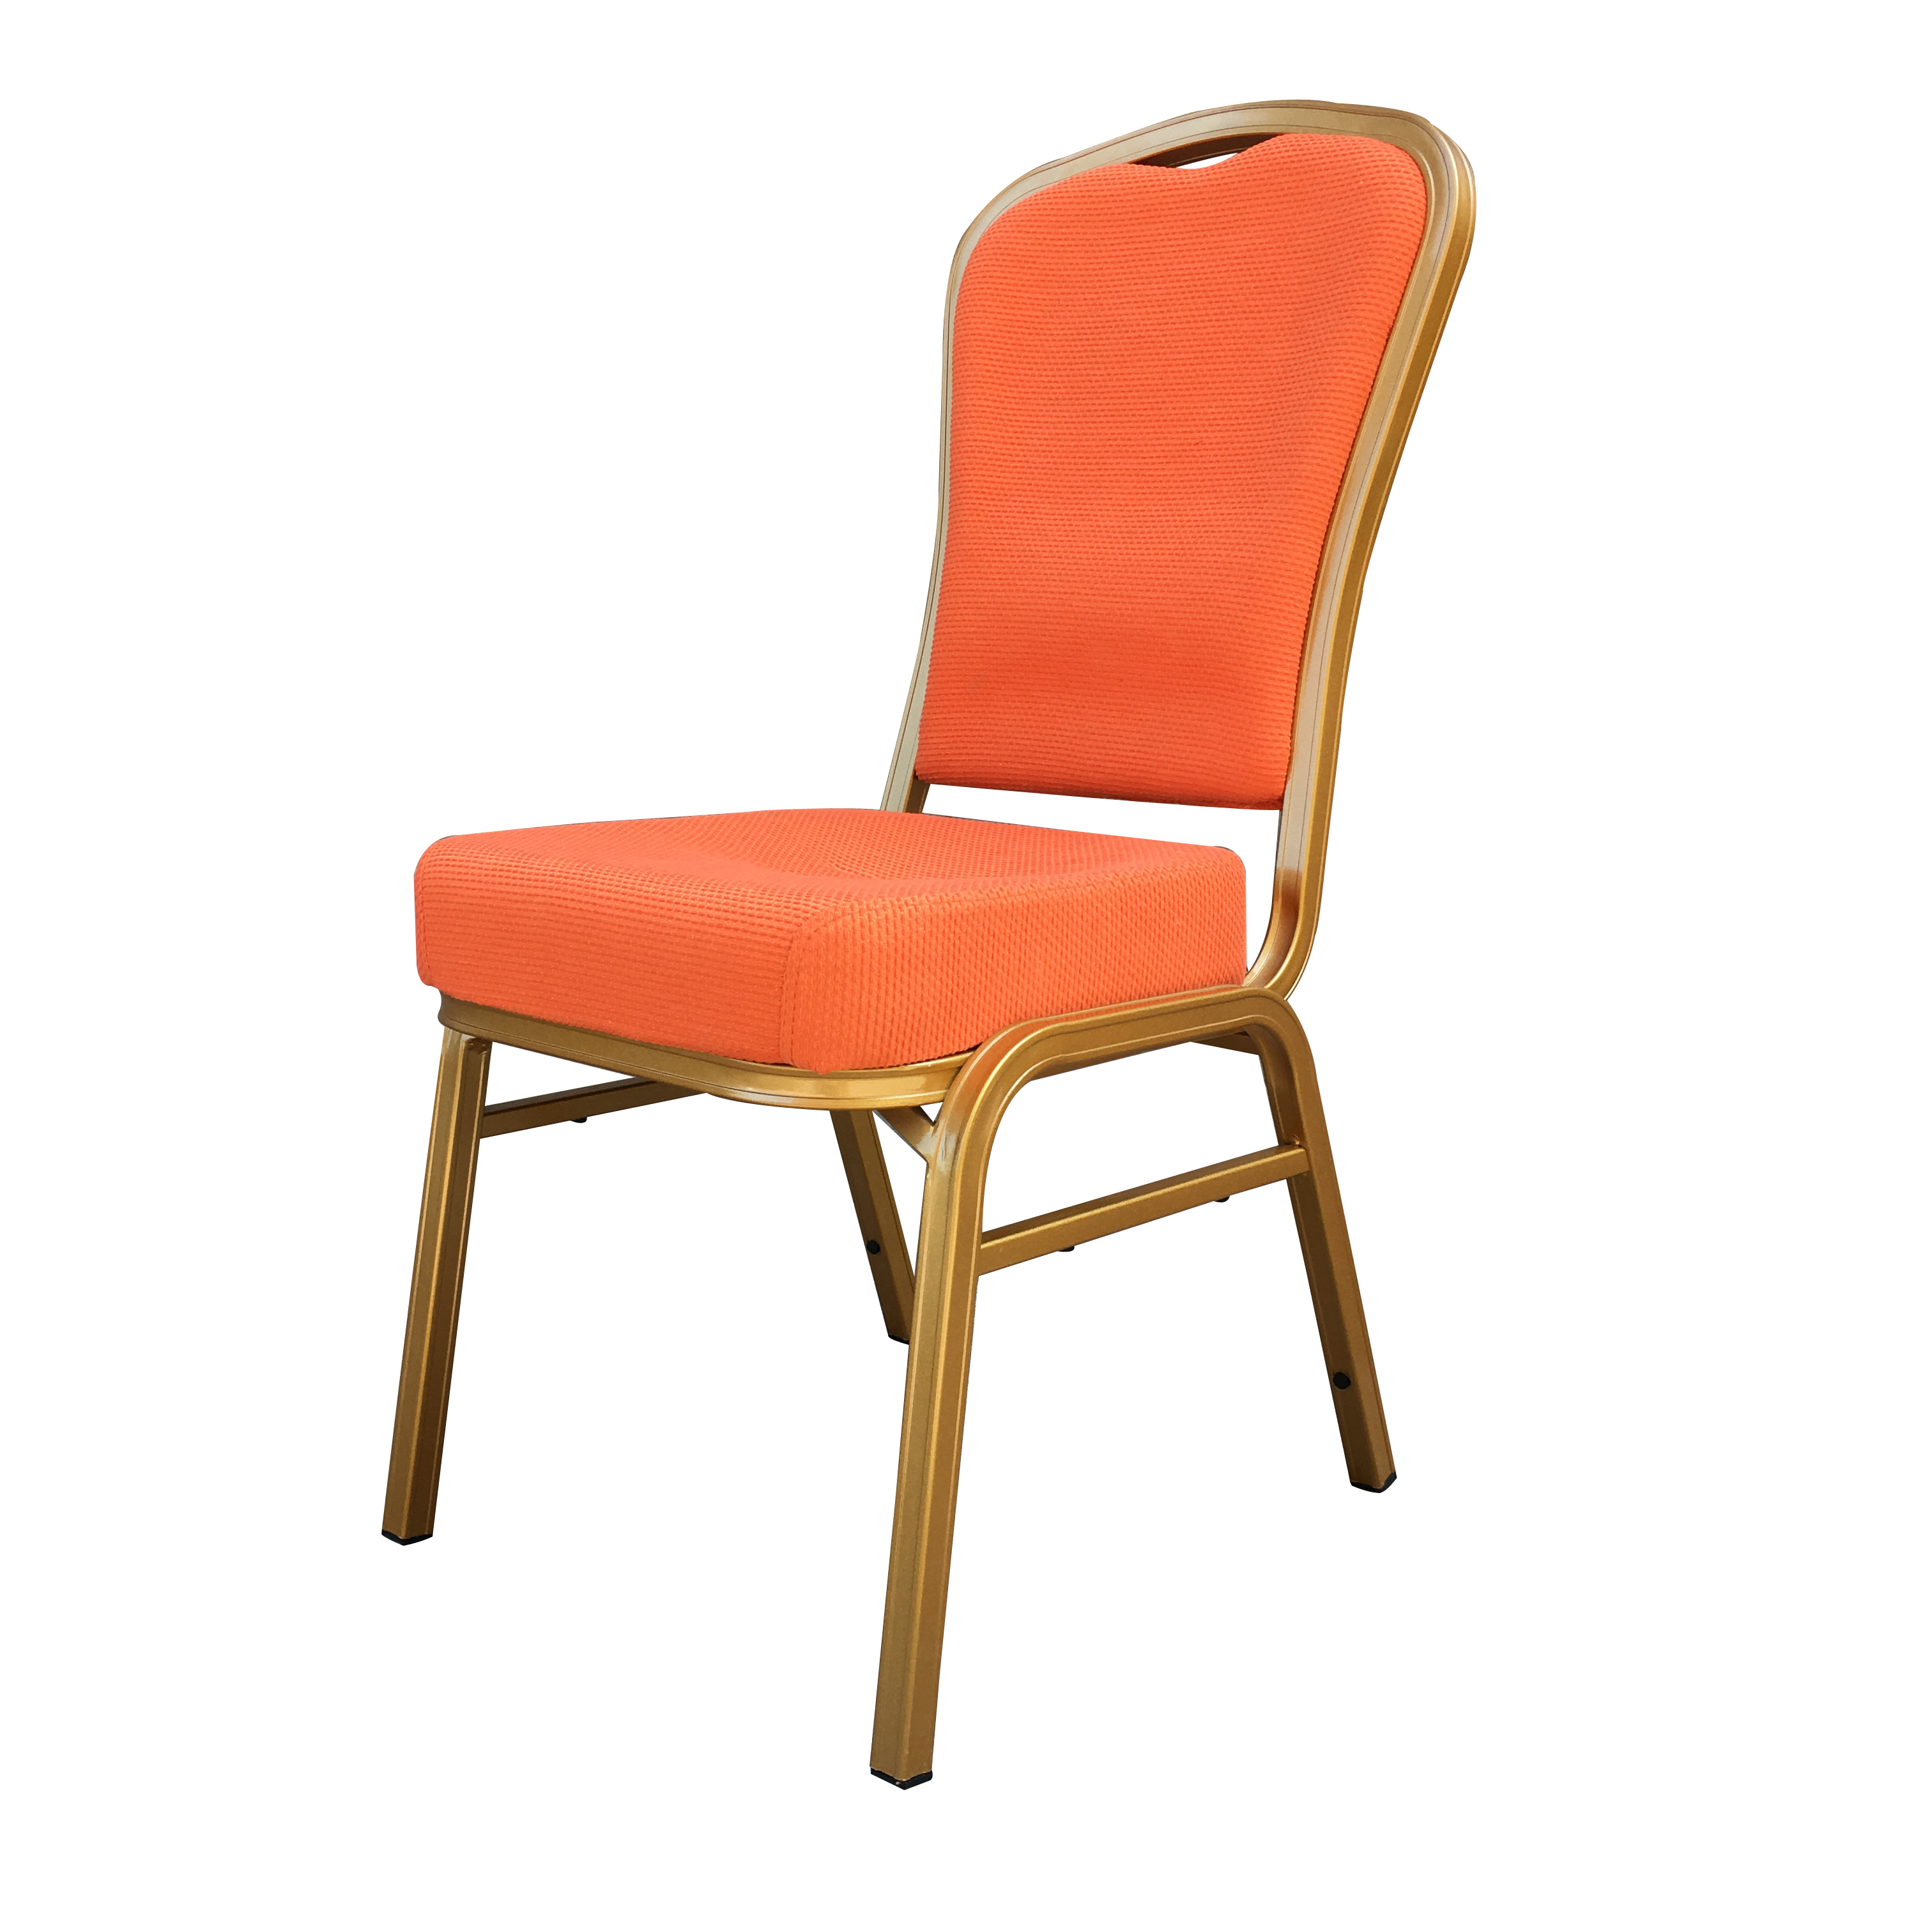 Well-designed Cinema Chairs For Sale In Theater - Used Hotel Banquet Chairs SF-L09 – Jiangchang Furniture